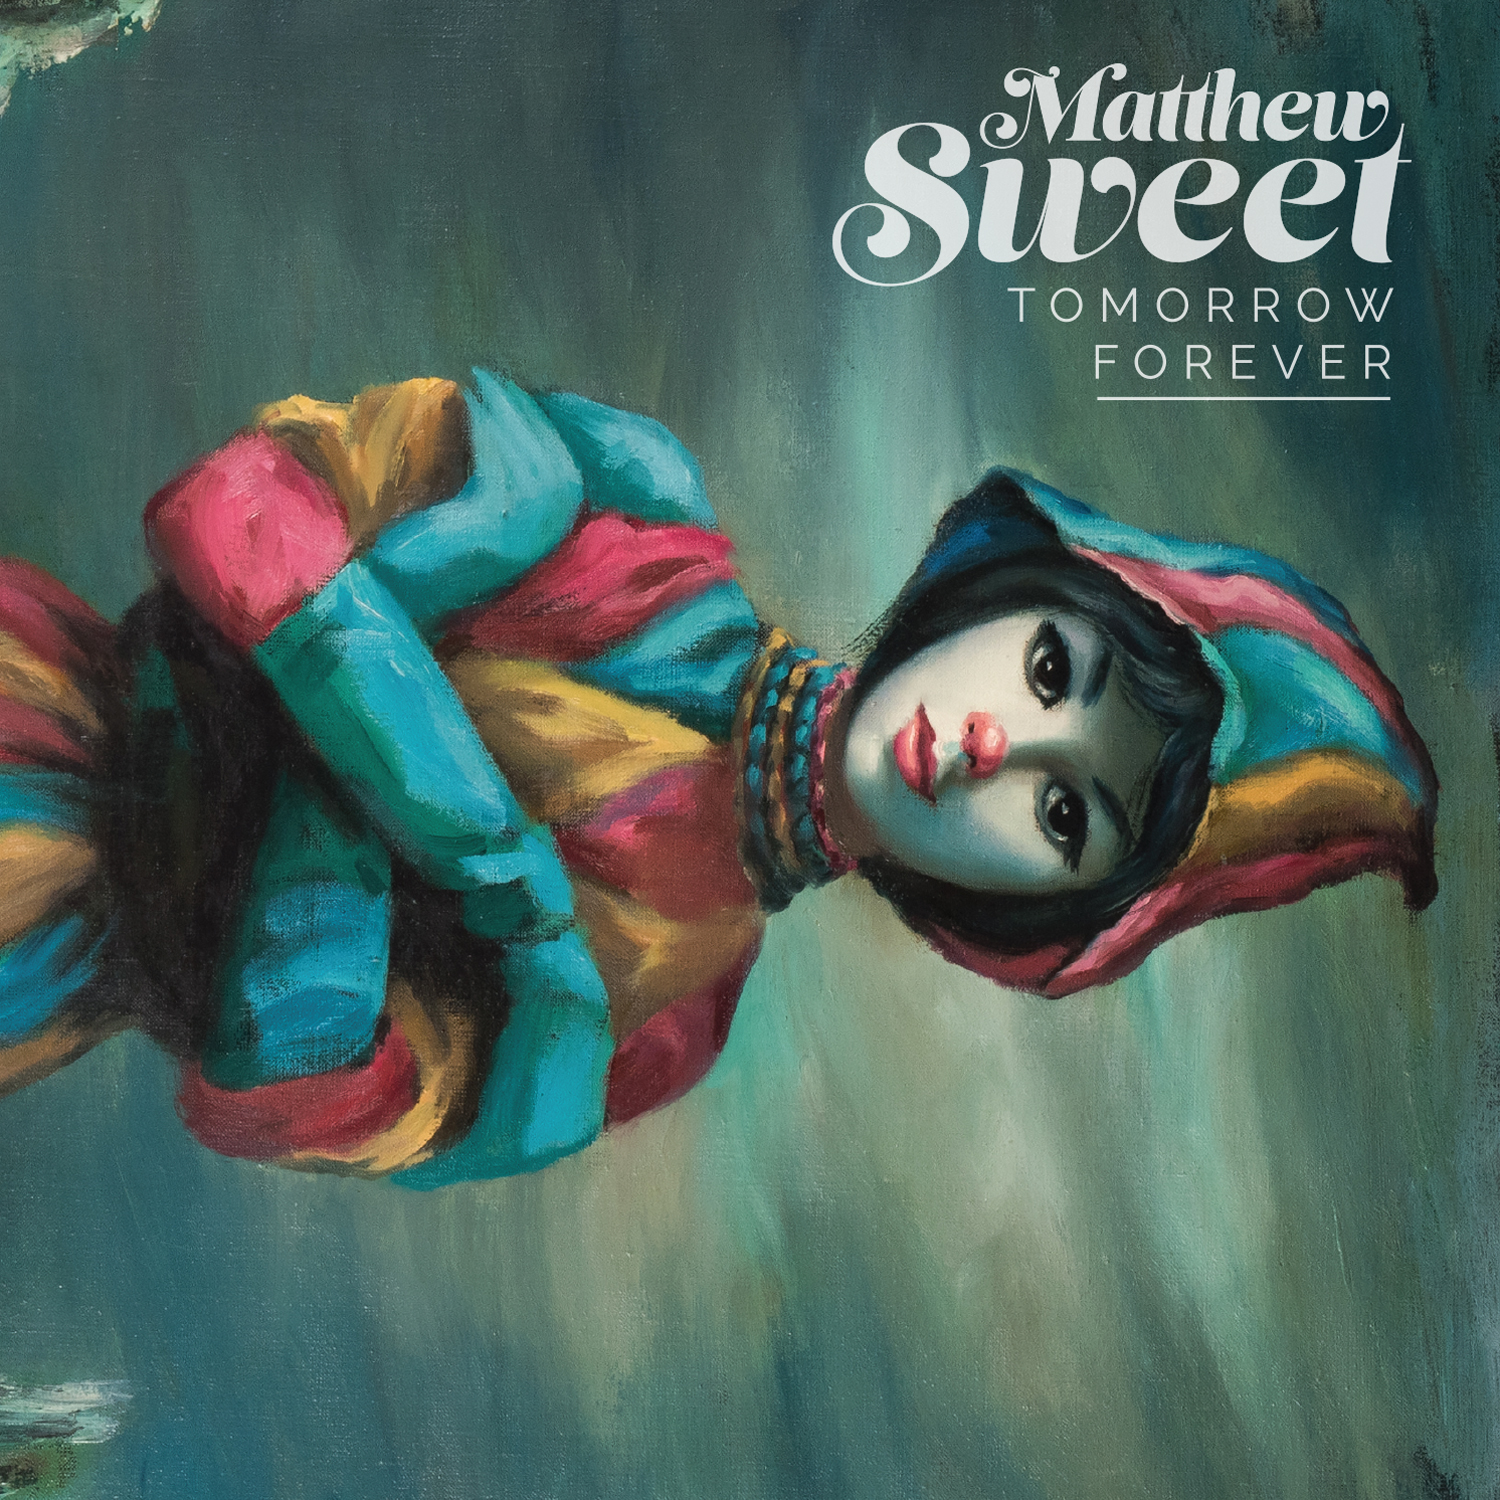 mstfcover Matthew Sweet premieres new song Circle, taken from first album in six years    listen